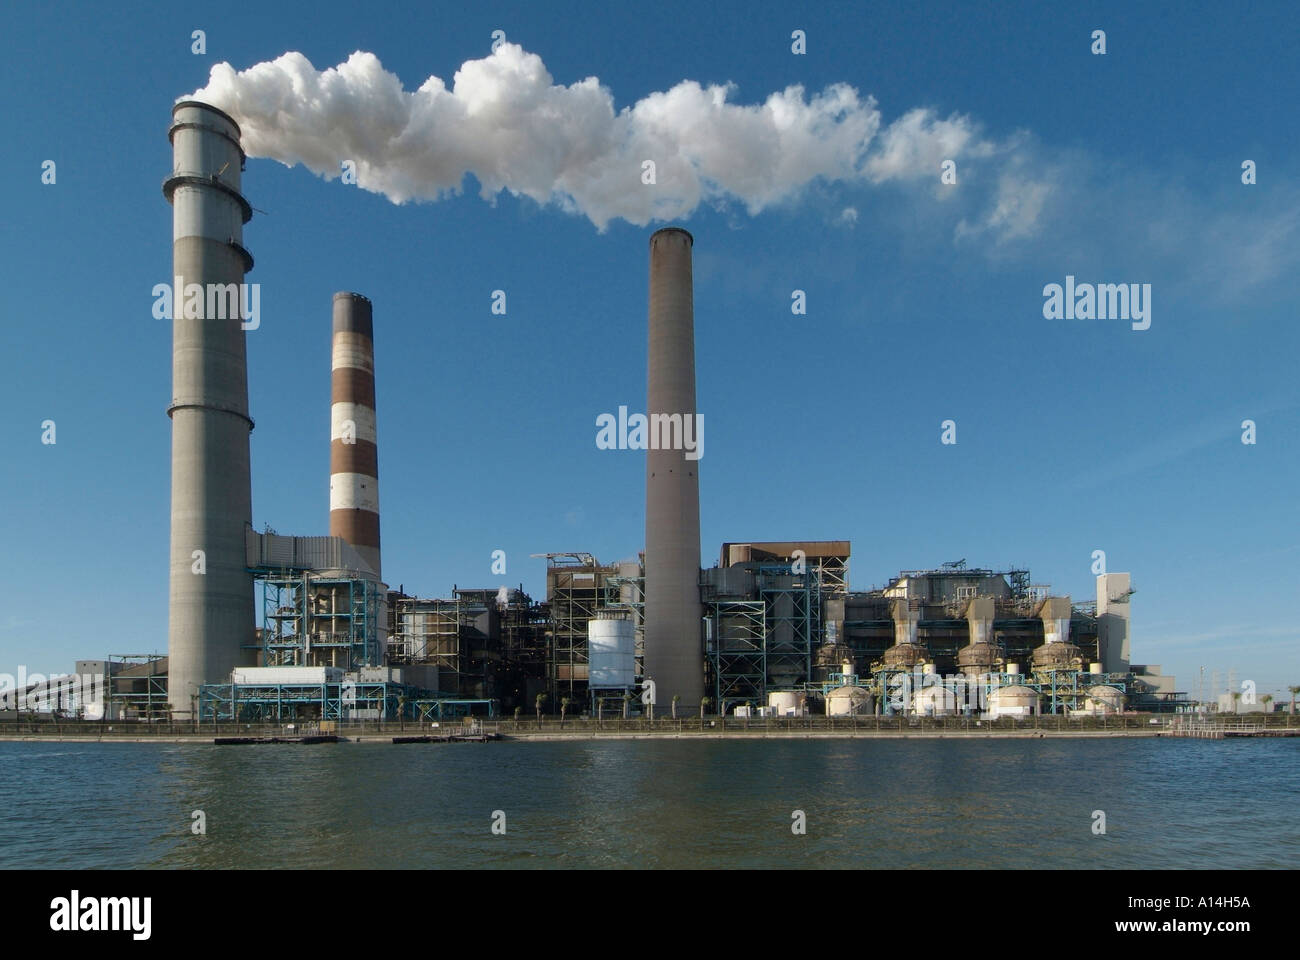 TECO power plant provide electricity to the city of Tampa and surrounding cities in Florida - Stock Image